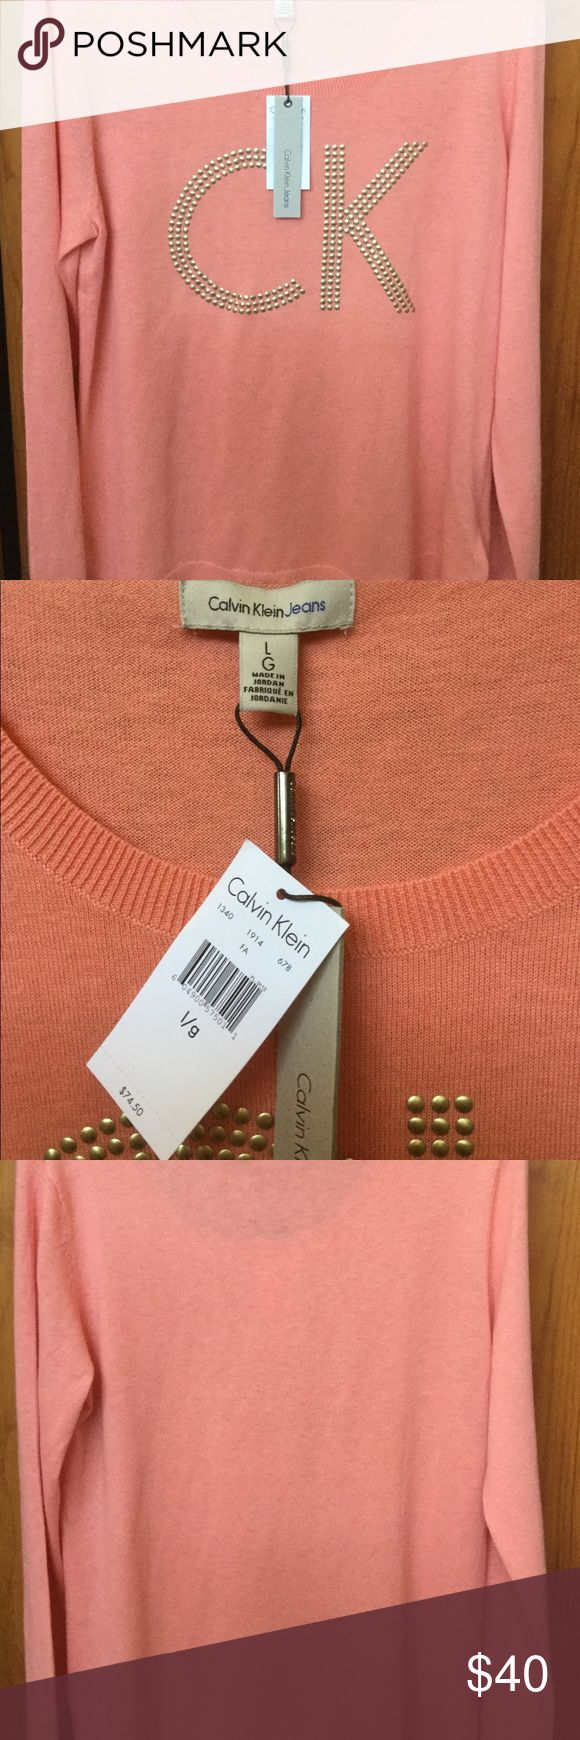 Calvin Klein Jeans Top Calvin Klein Top with long sleeves. Gold color design. Made of 55% cotton, 38% nylon and 7% rayon. The color is more like a light peach color but not on the option to select. Calvin Klein Jeans Sweaters Cardigans